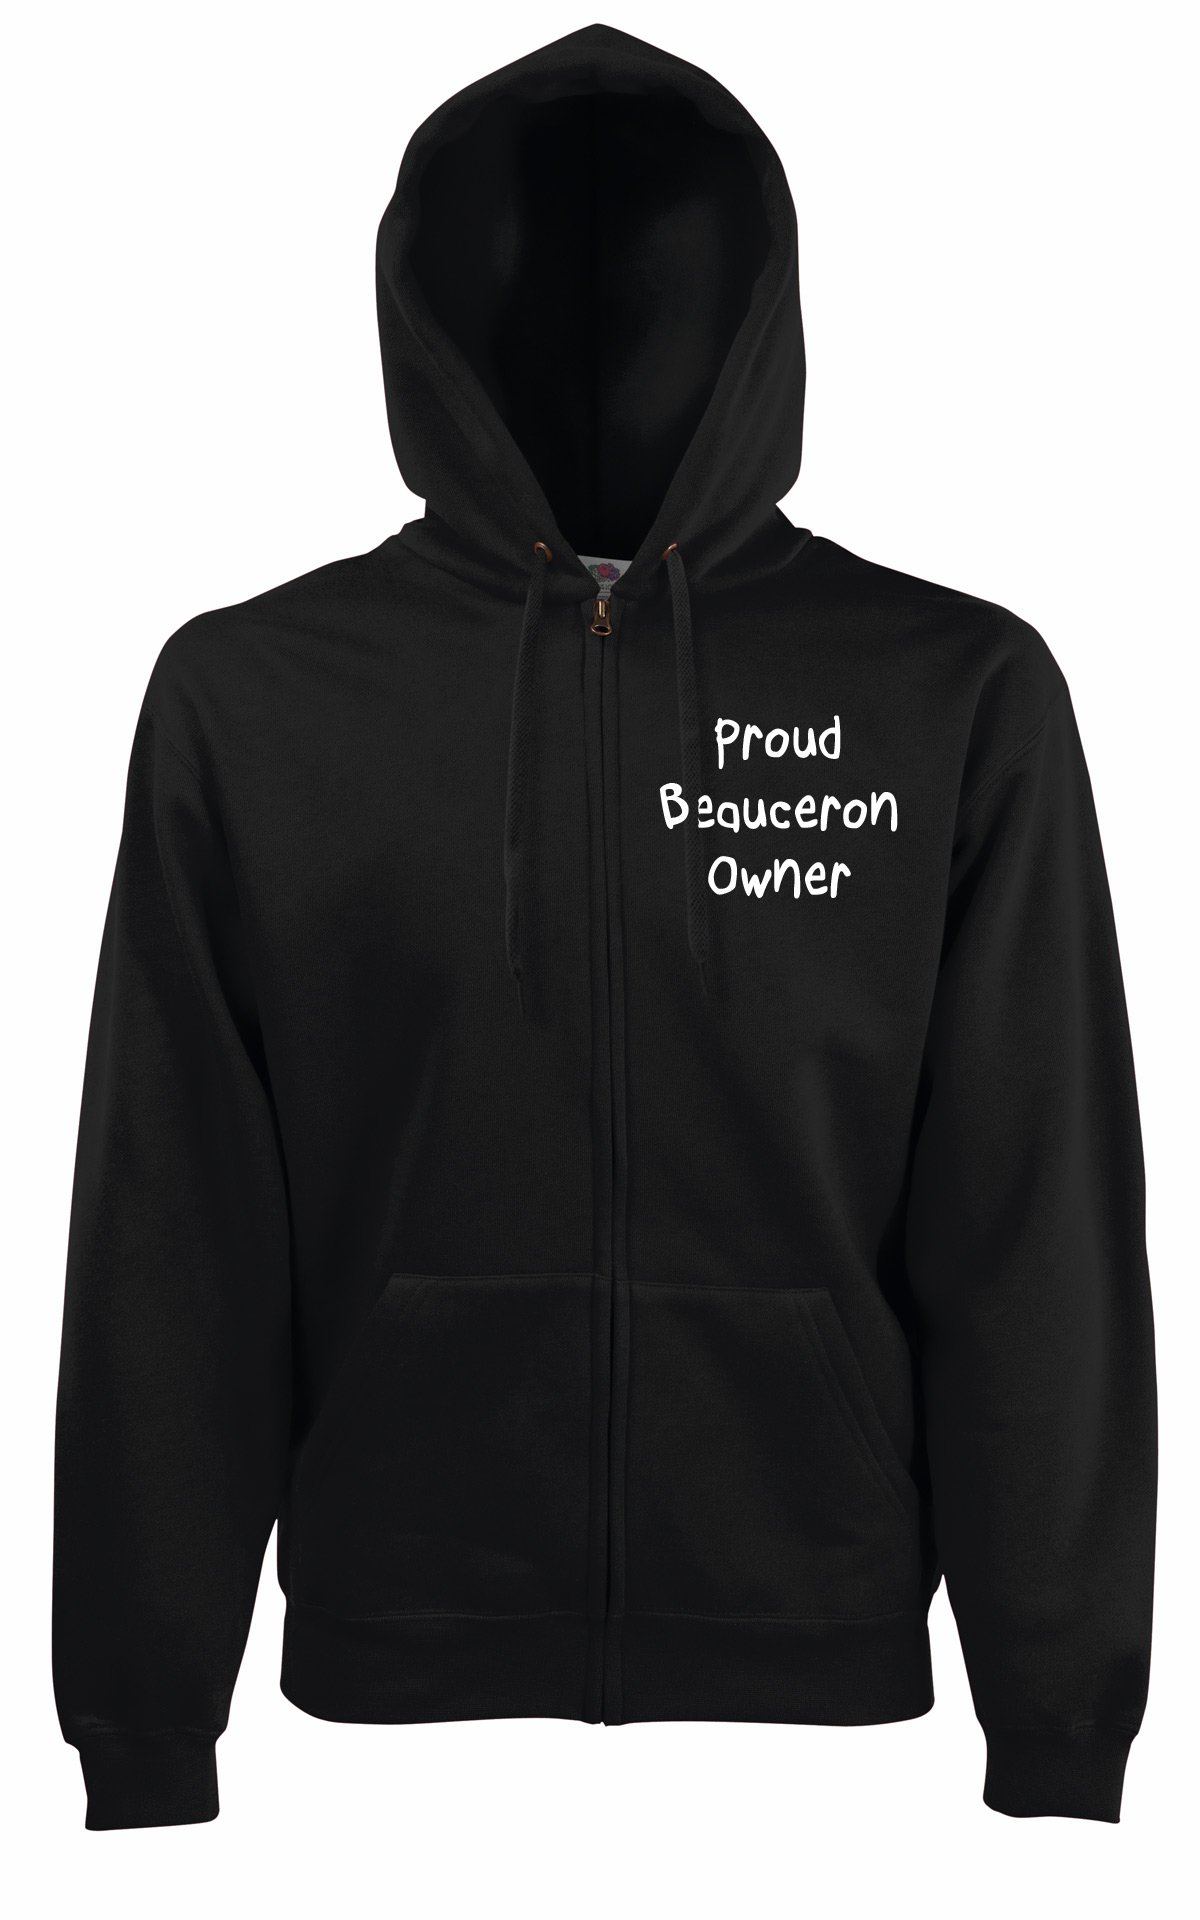 Proud Beauceron Owner Dog Walker Hooded Jacket Hoodie Gift